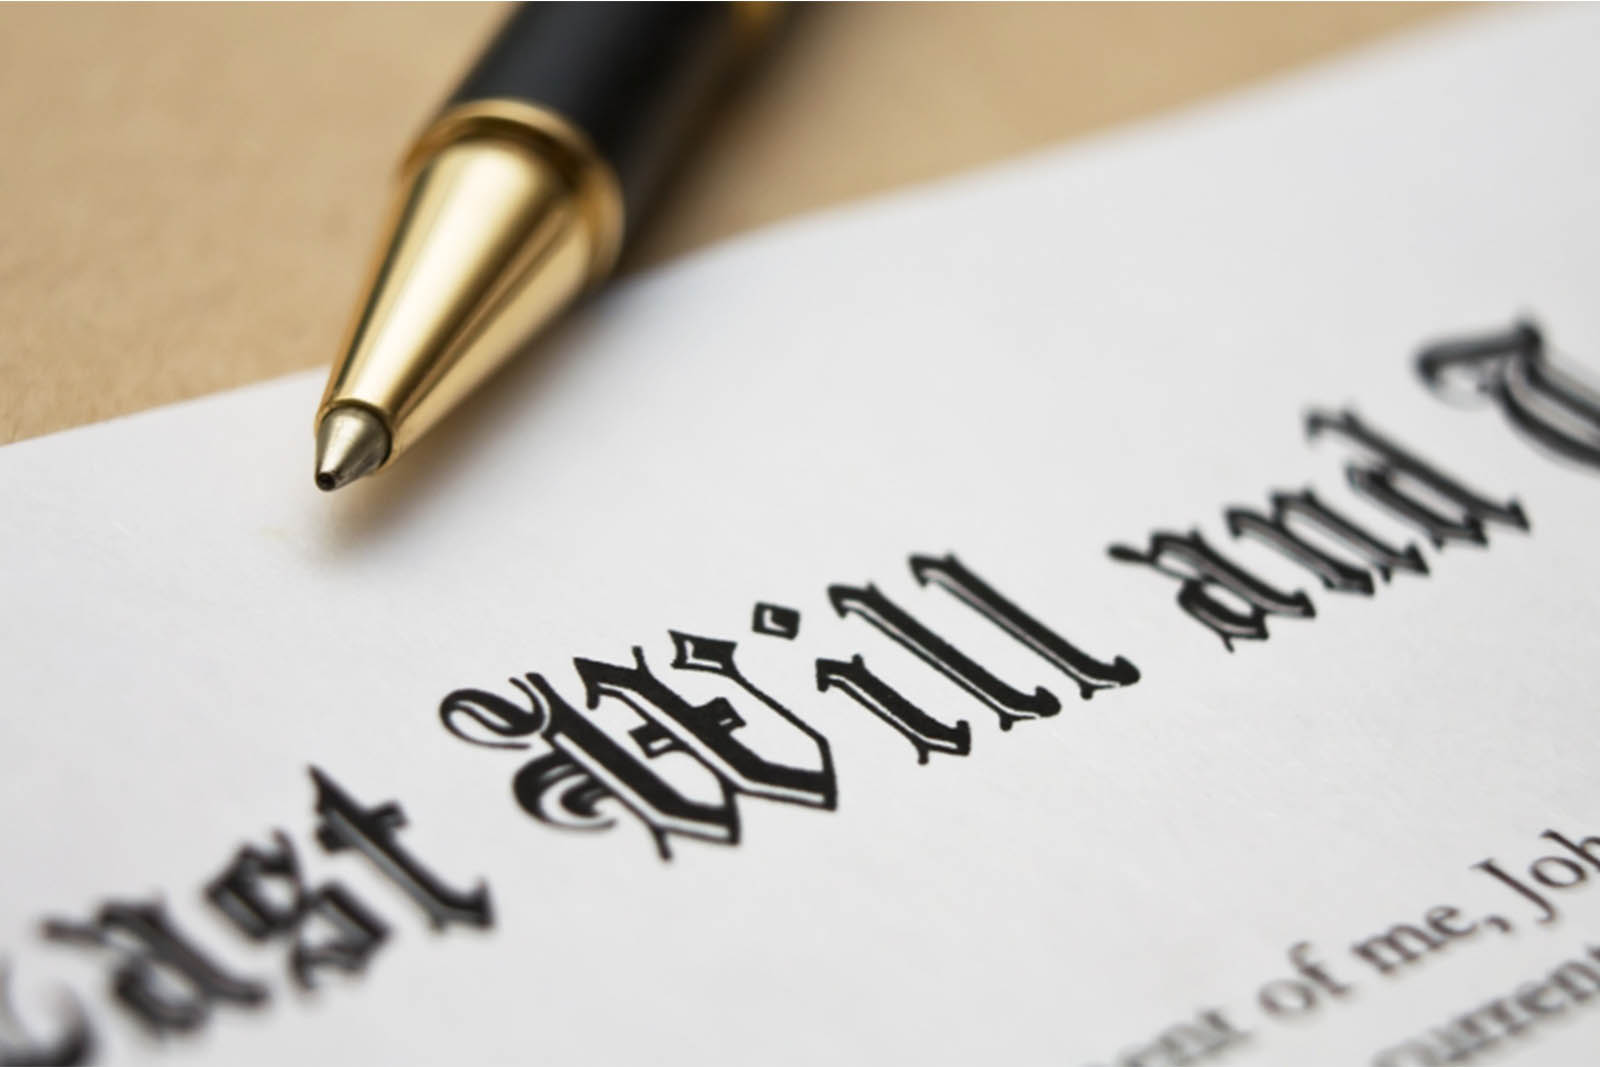 4 REASONS TO MAKE A WILL BEFORE DEATH